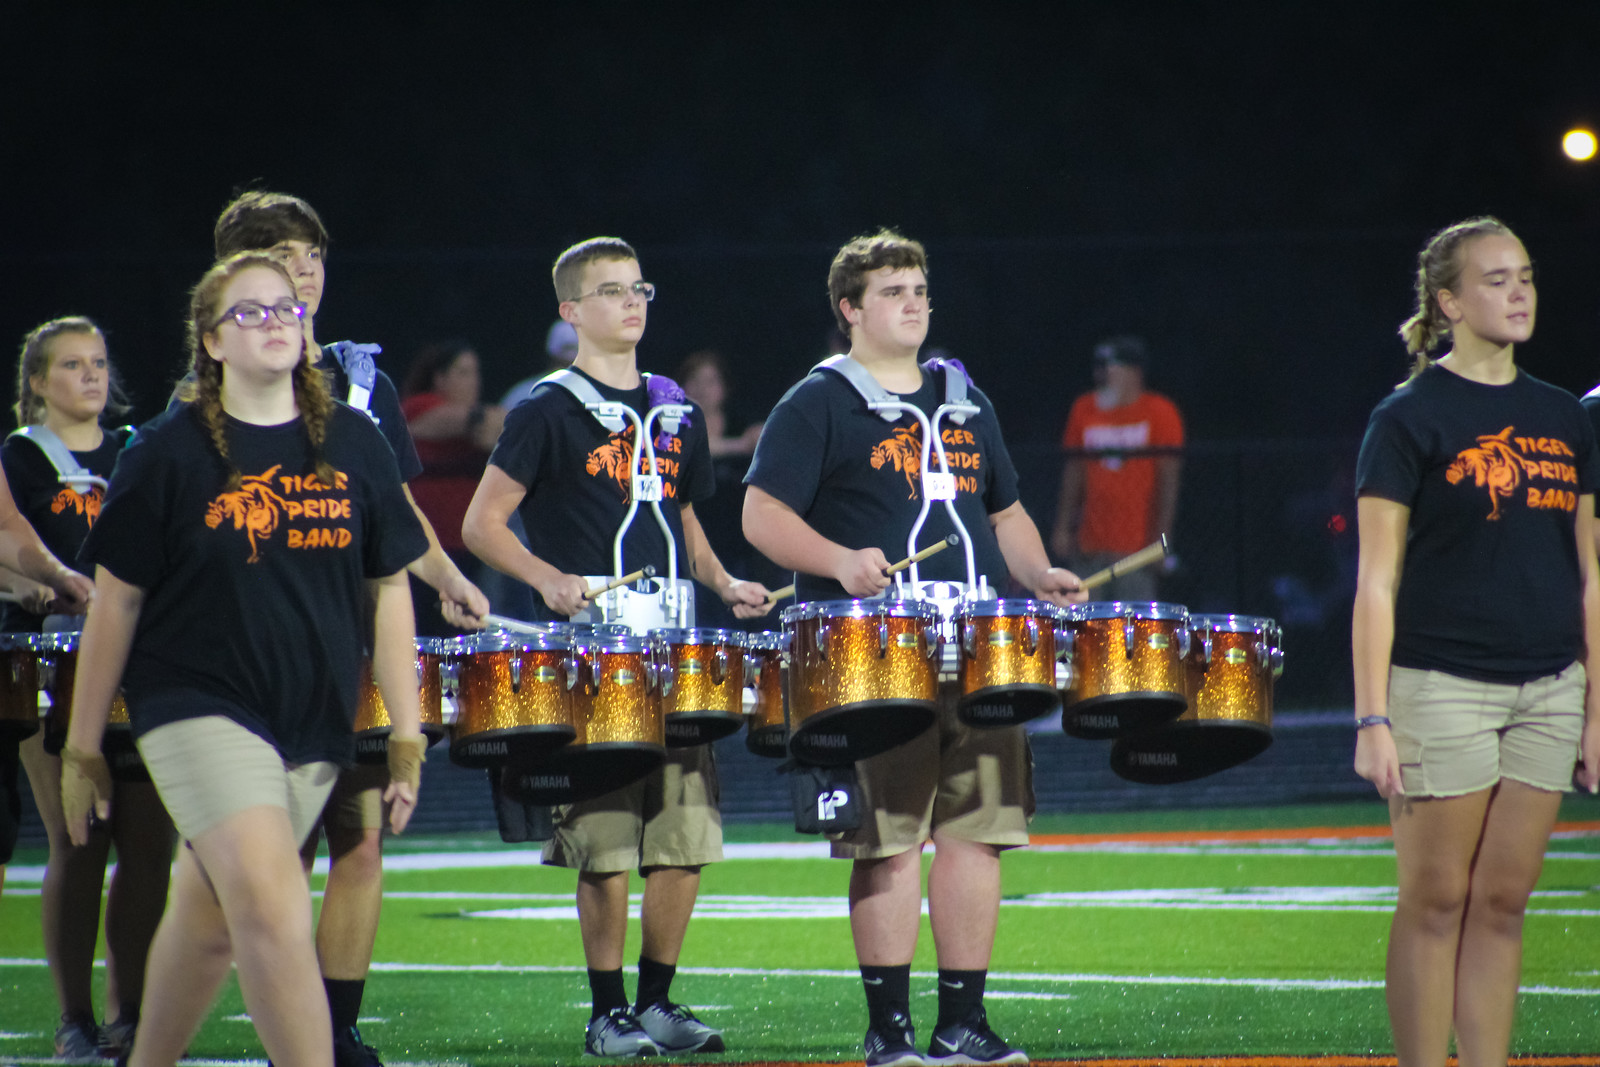 Off The Field: Tiger Pride Band – Halftime Vs Branson